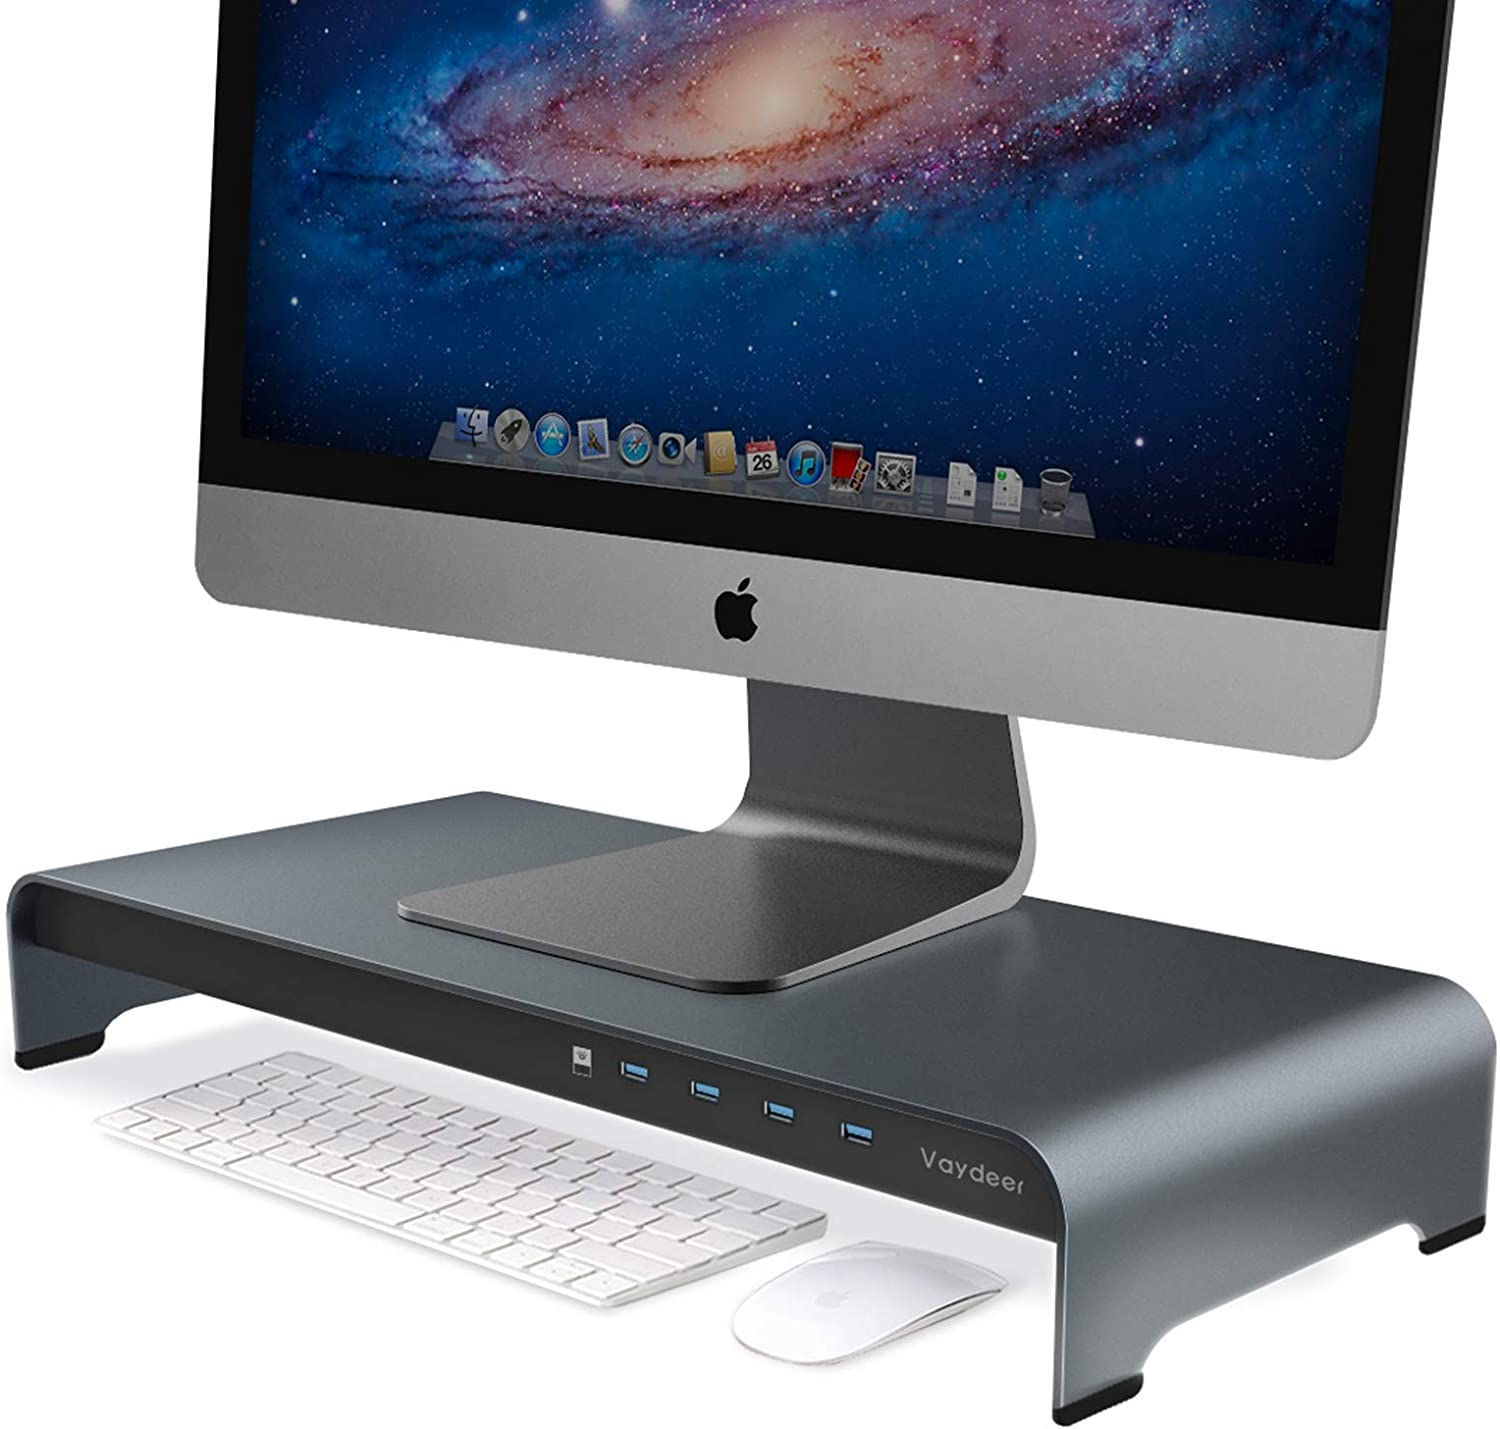 VAYDEER Aluminum Monitor Stand Riser with 4 USB Ports Support Data Transfer, Keyboard and Mouse Storage Desk Organizer up to 32 inch for Computer PC Monitor and laptops(Gray)